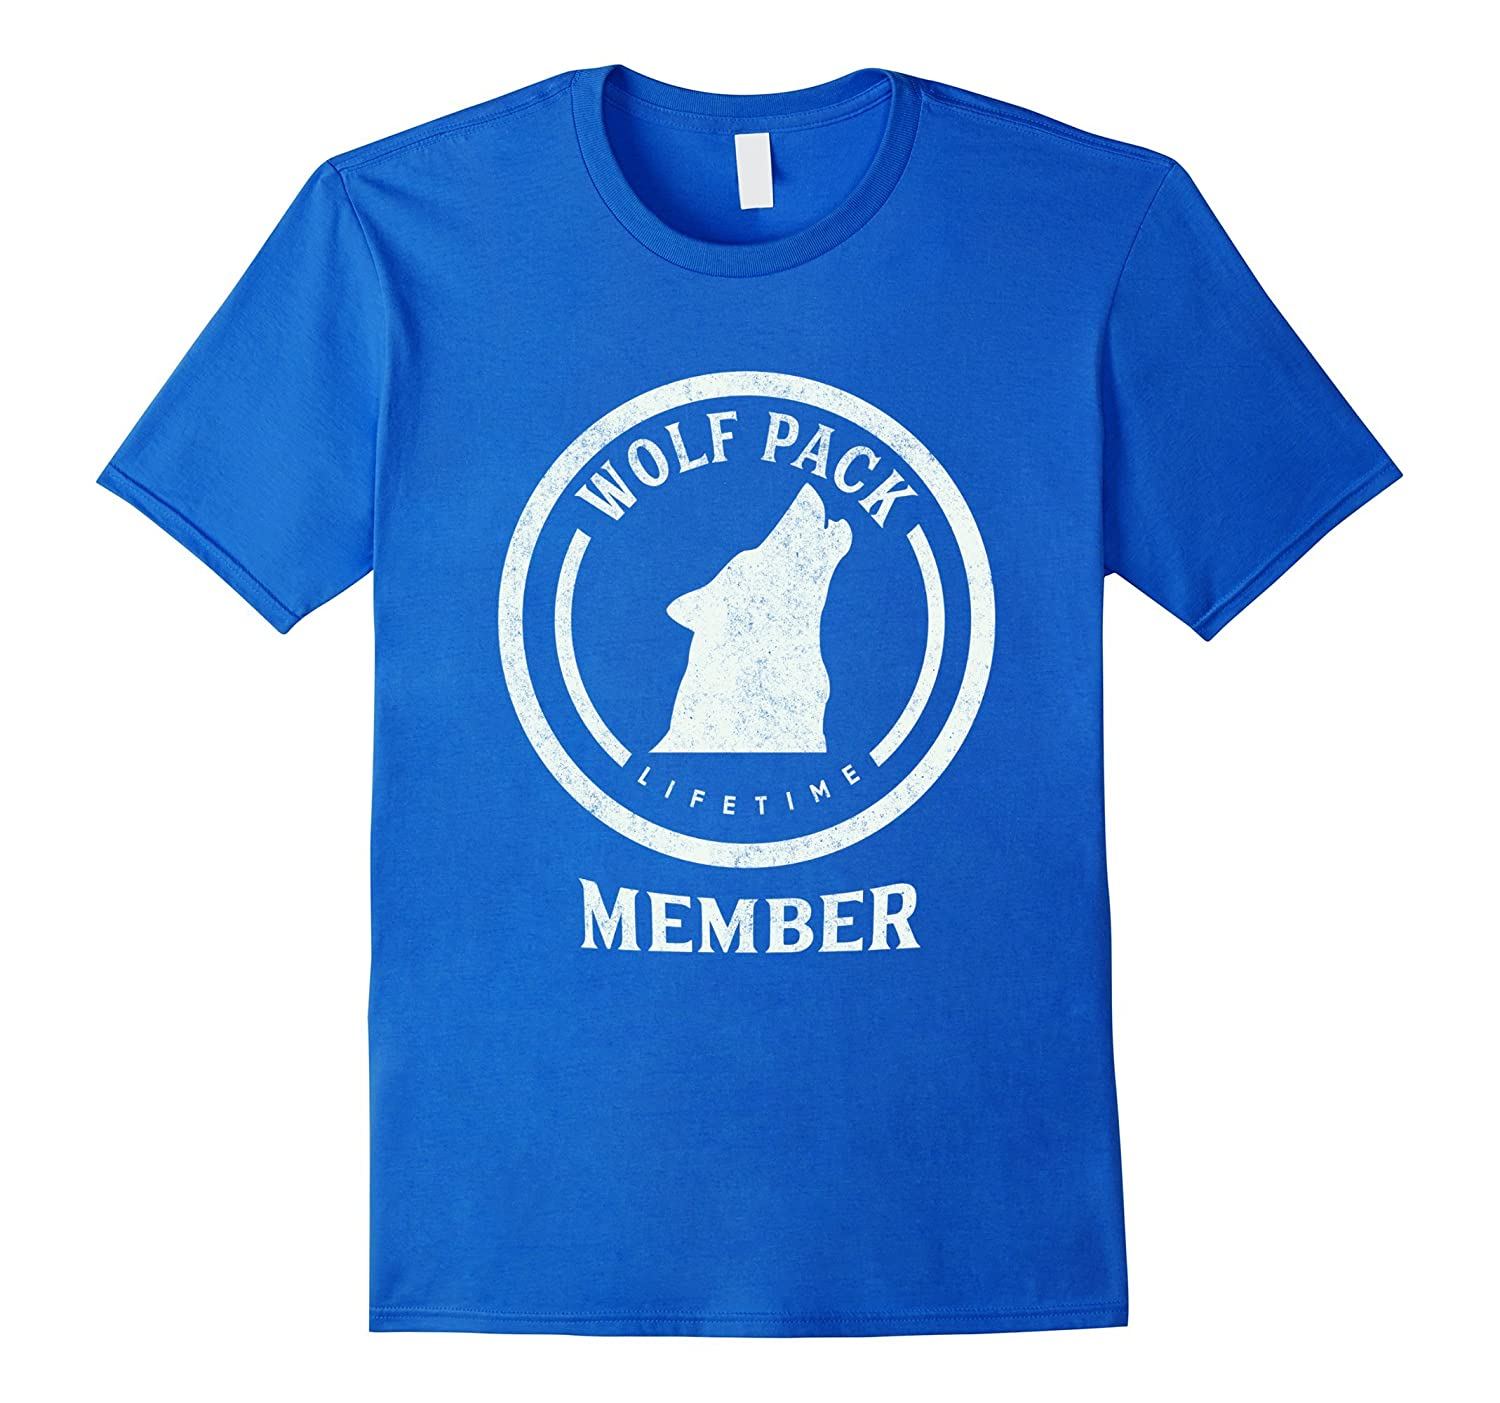 Howling Wolf Pack Lifetime Member Distressed T-Shirt-TH